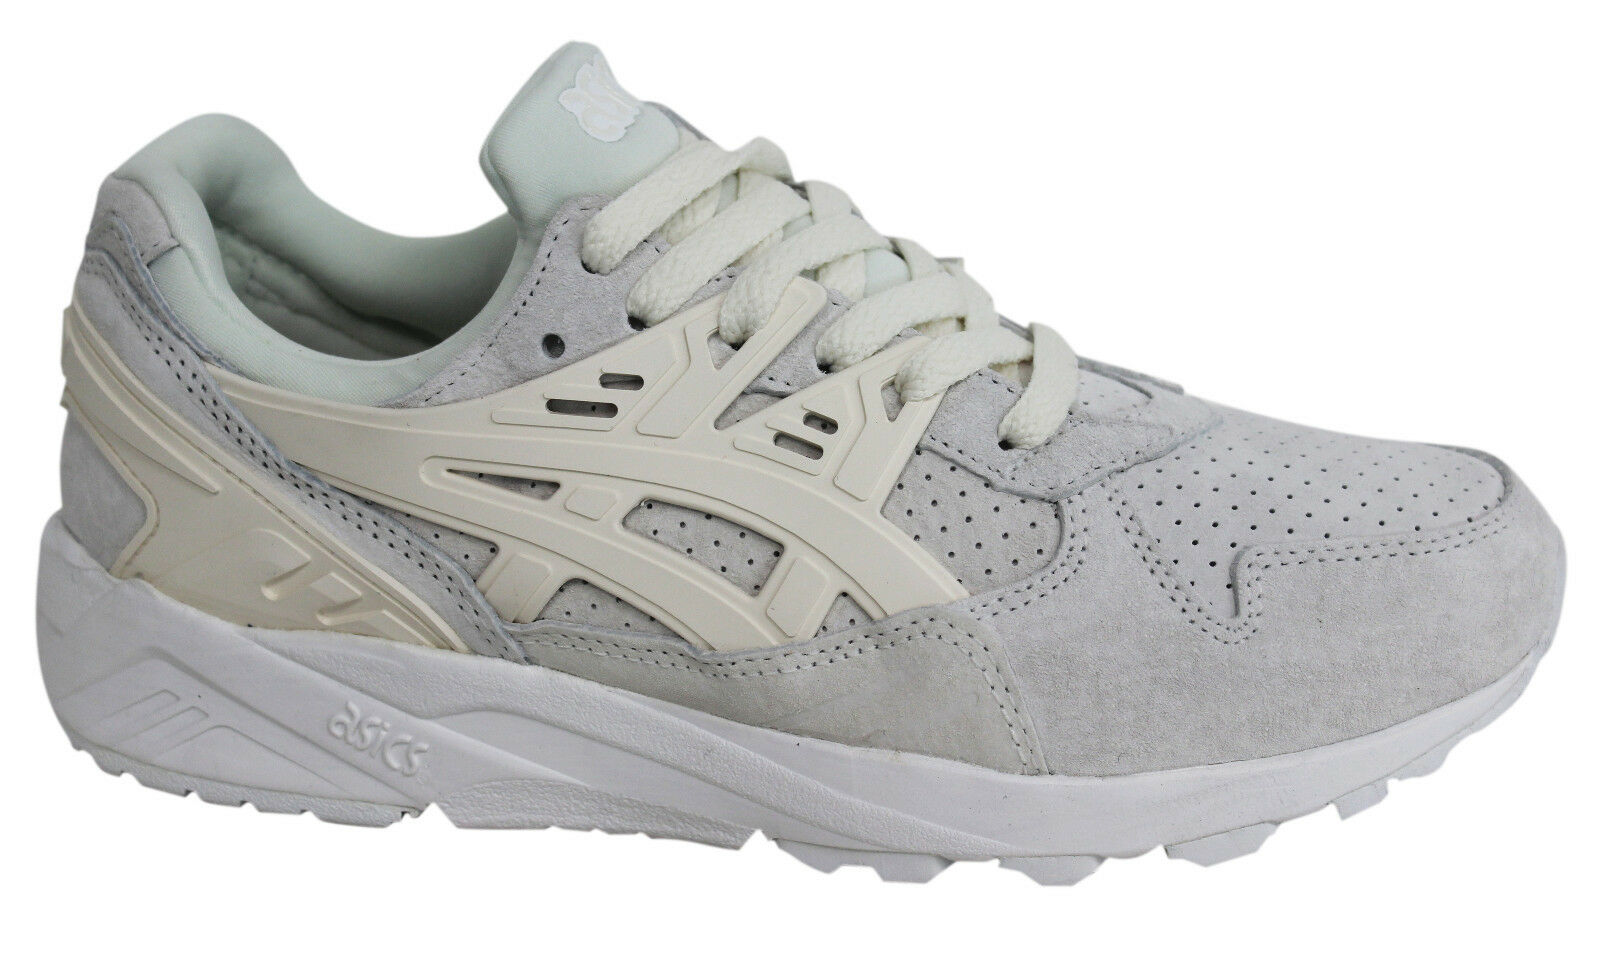 Asics Gel-Kayano White Evo White Gel-Kayano Lace Up Mens Textile Trainers H6M2L 9999 D9 32ccf3